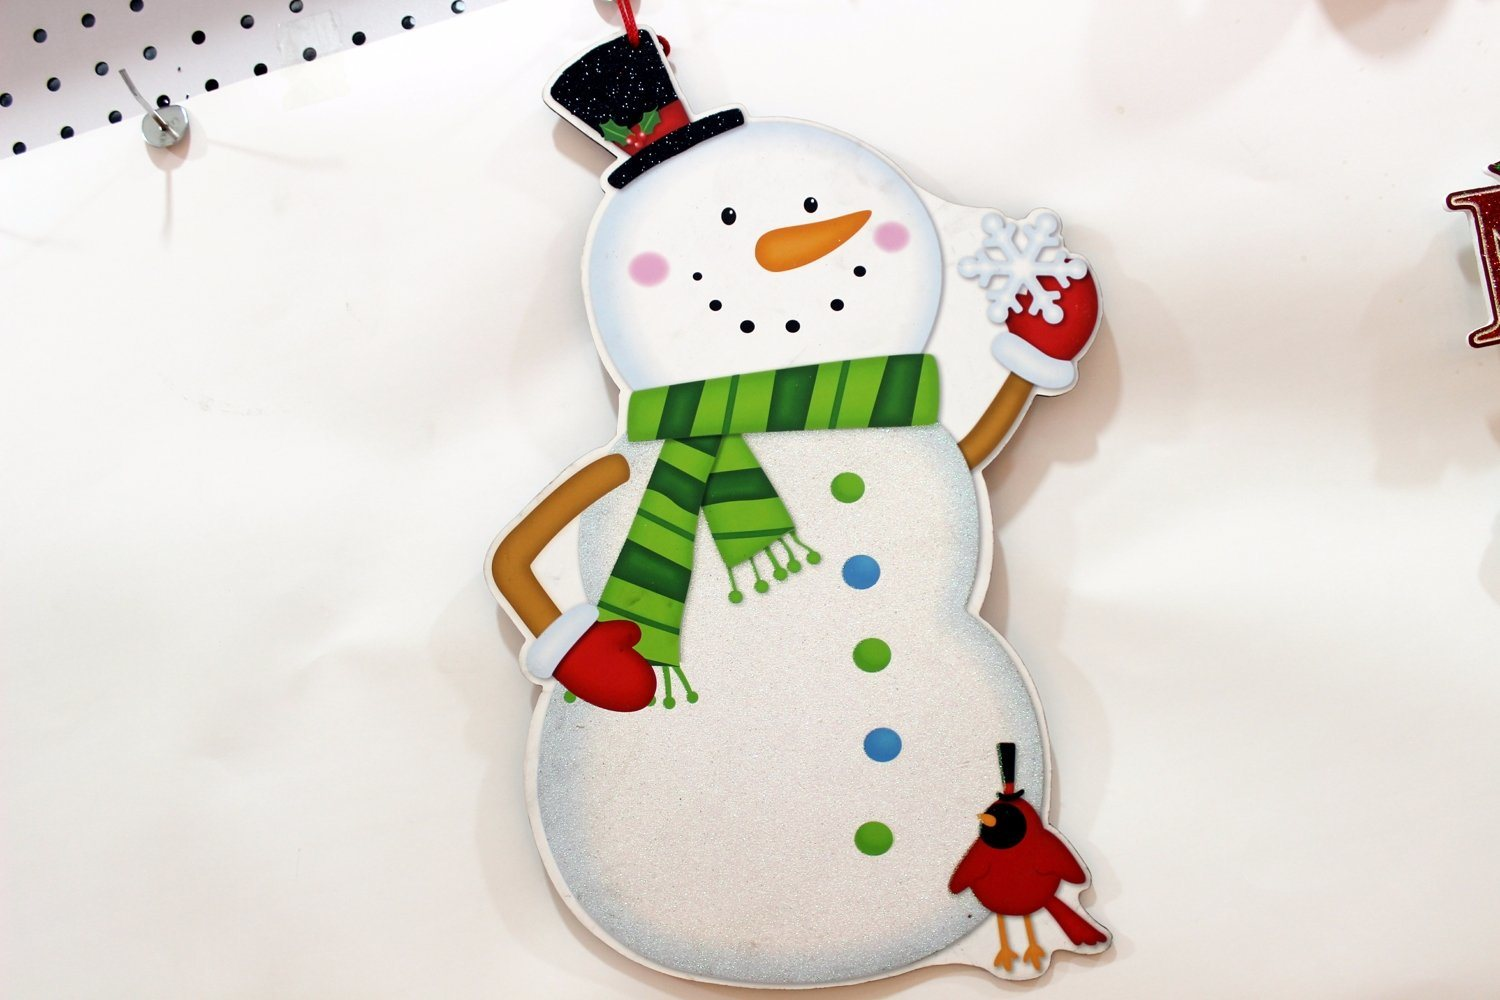 Christmas Articles.Hot Item High Grade Paper Board Or Plywood Christmas Hanging Articles 30